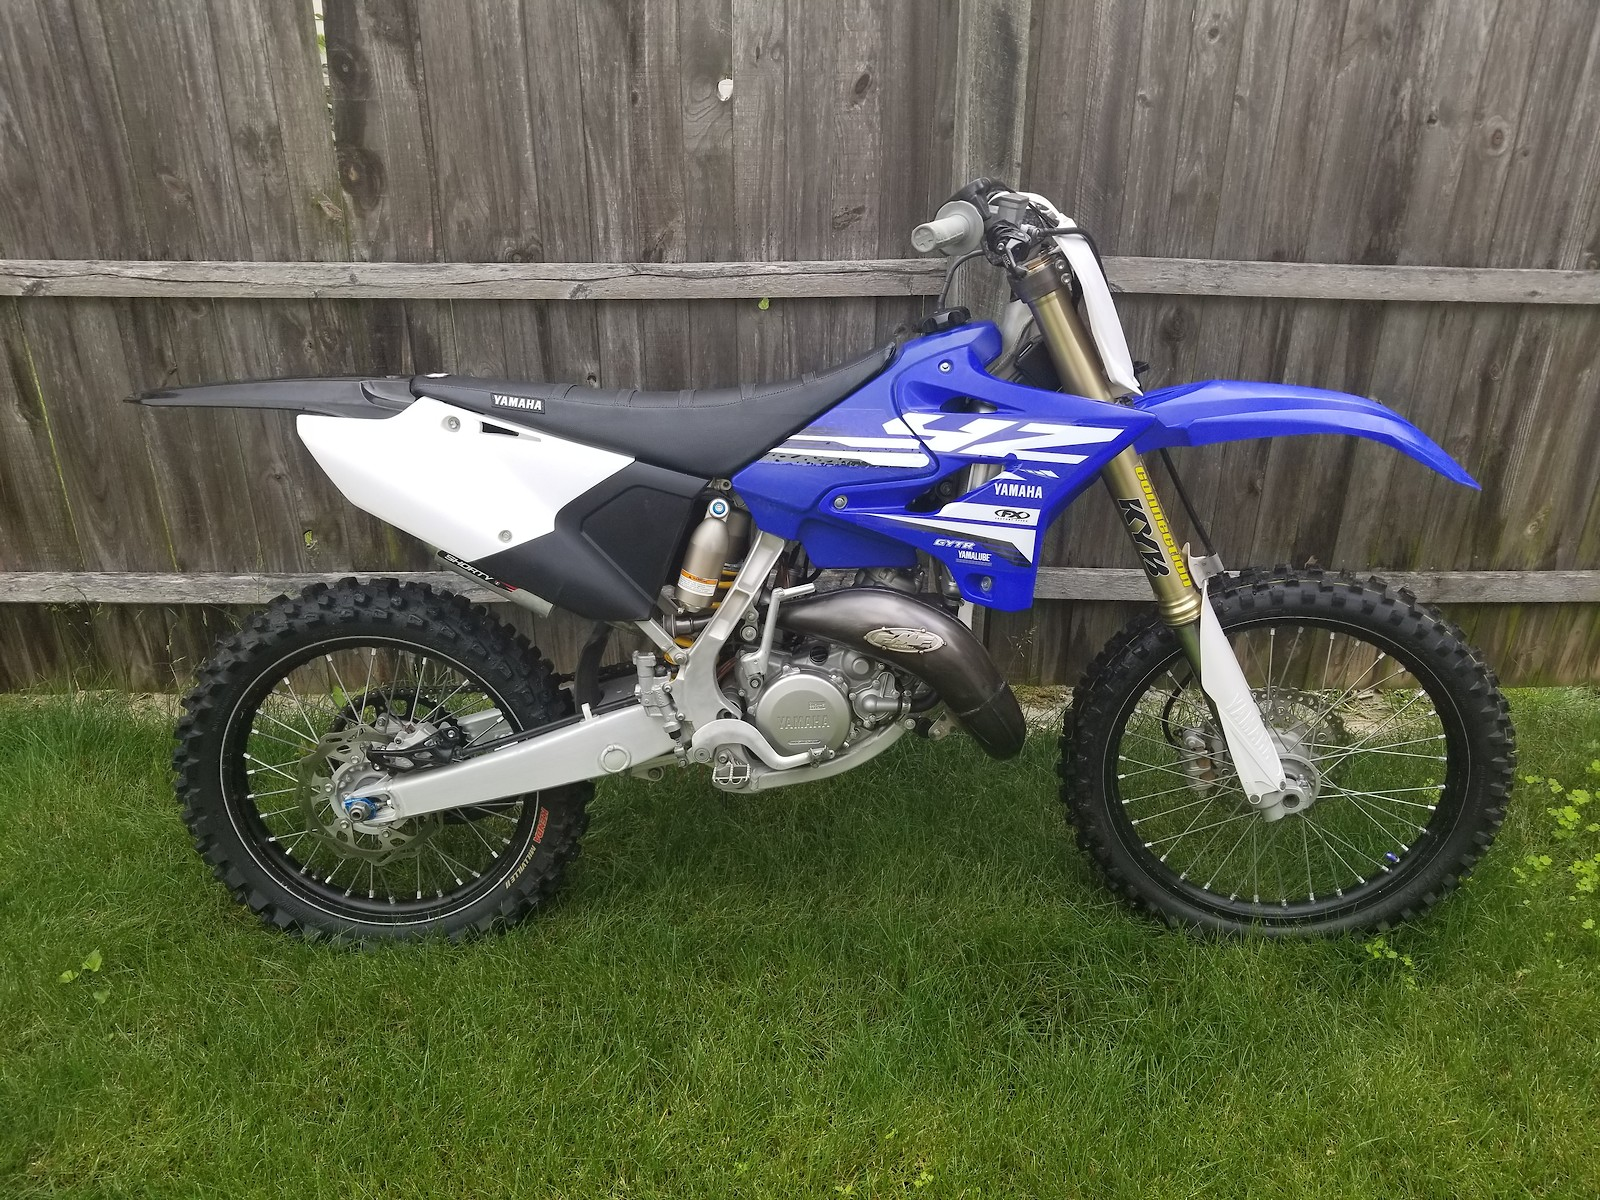 2016 Yz125 For Has Minor Motor Mods That Can Run On Pump Gas 4200 Obo Message More Details